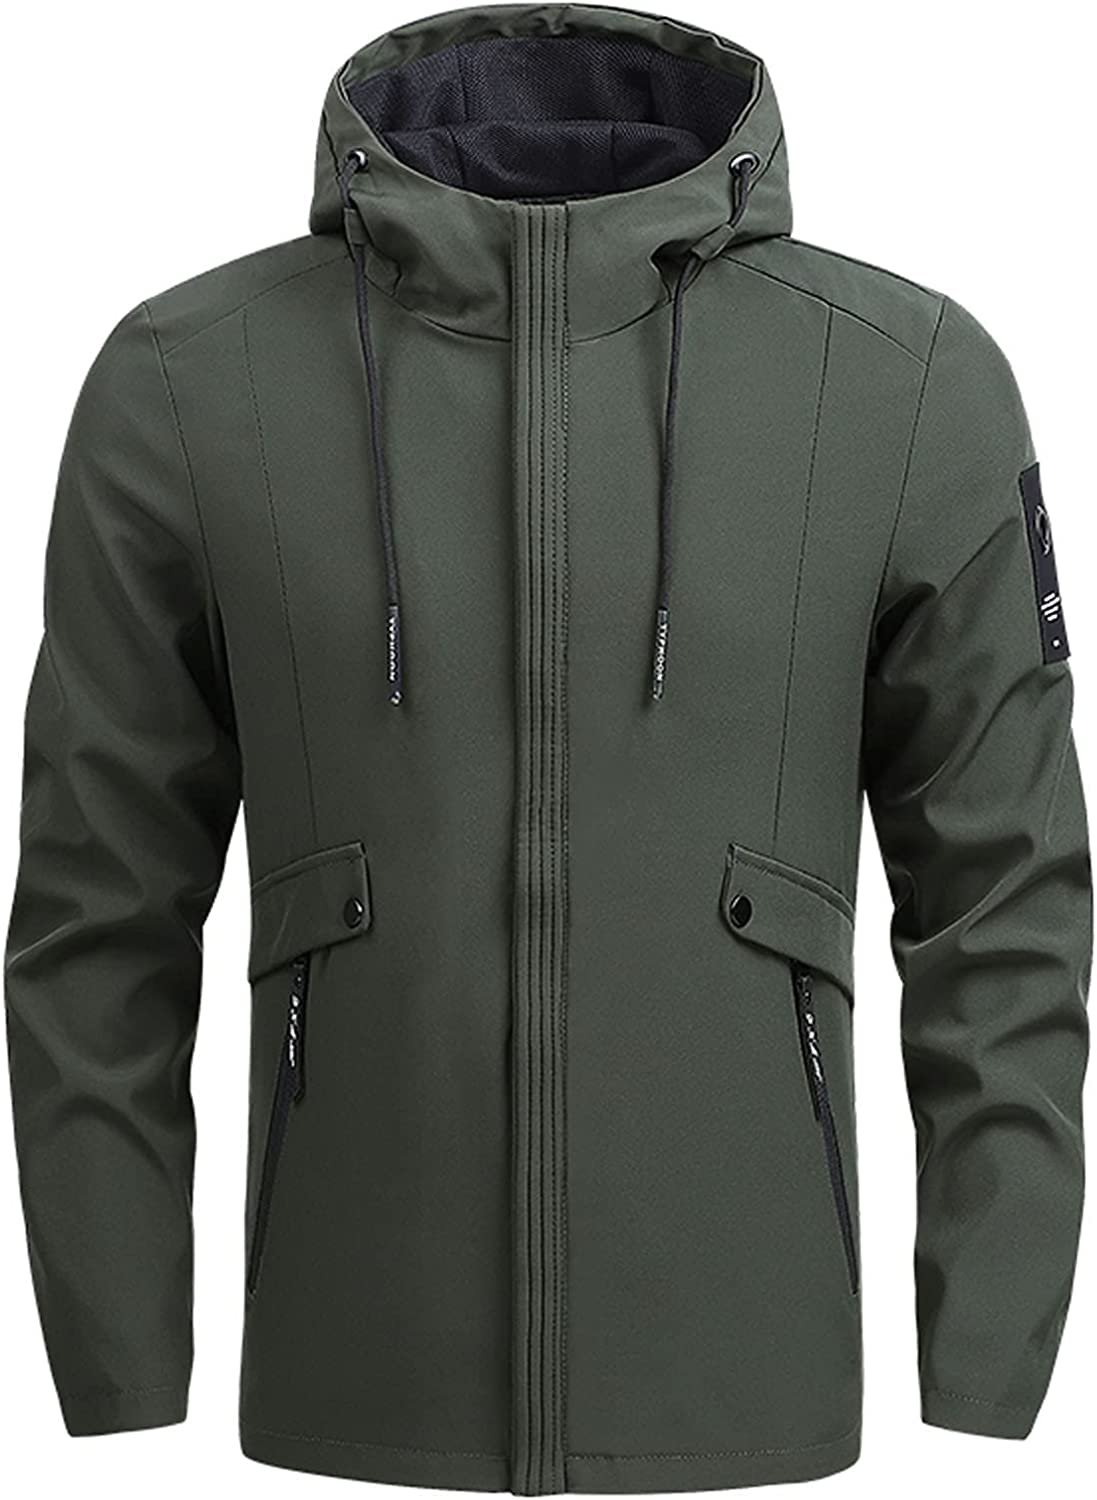 Mens Hoodie Jacket Zip-Up Drawstring Colo Sleeve Special price free shipping Coat Solid Long